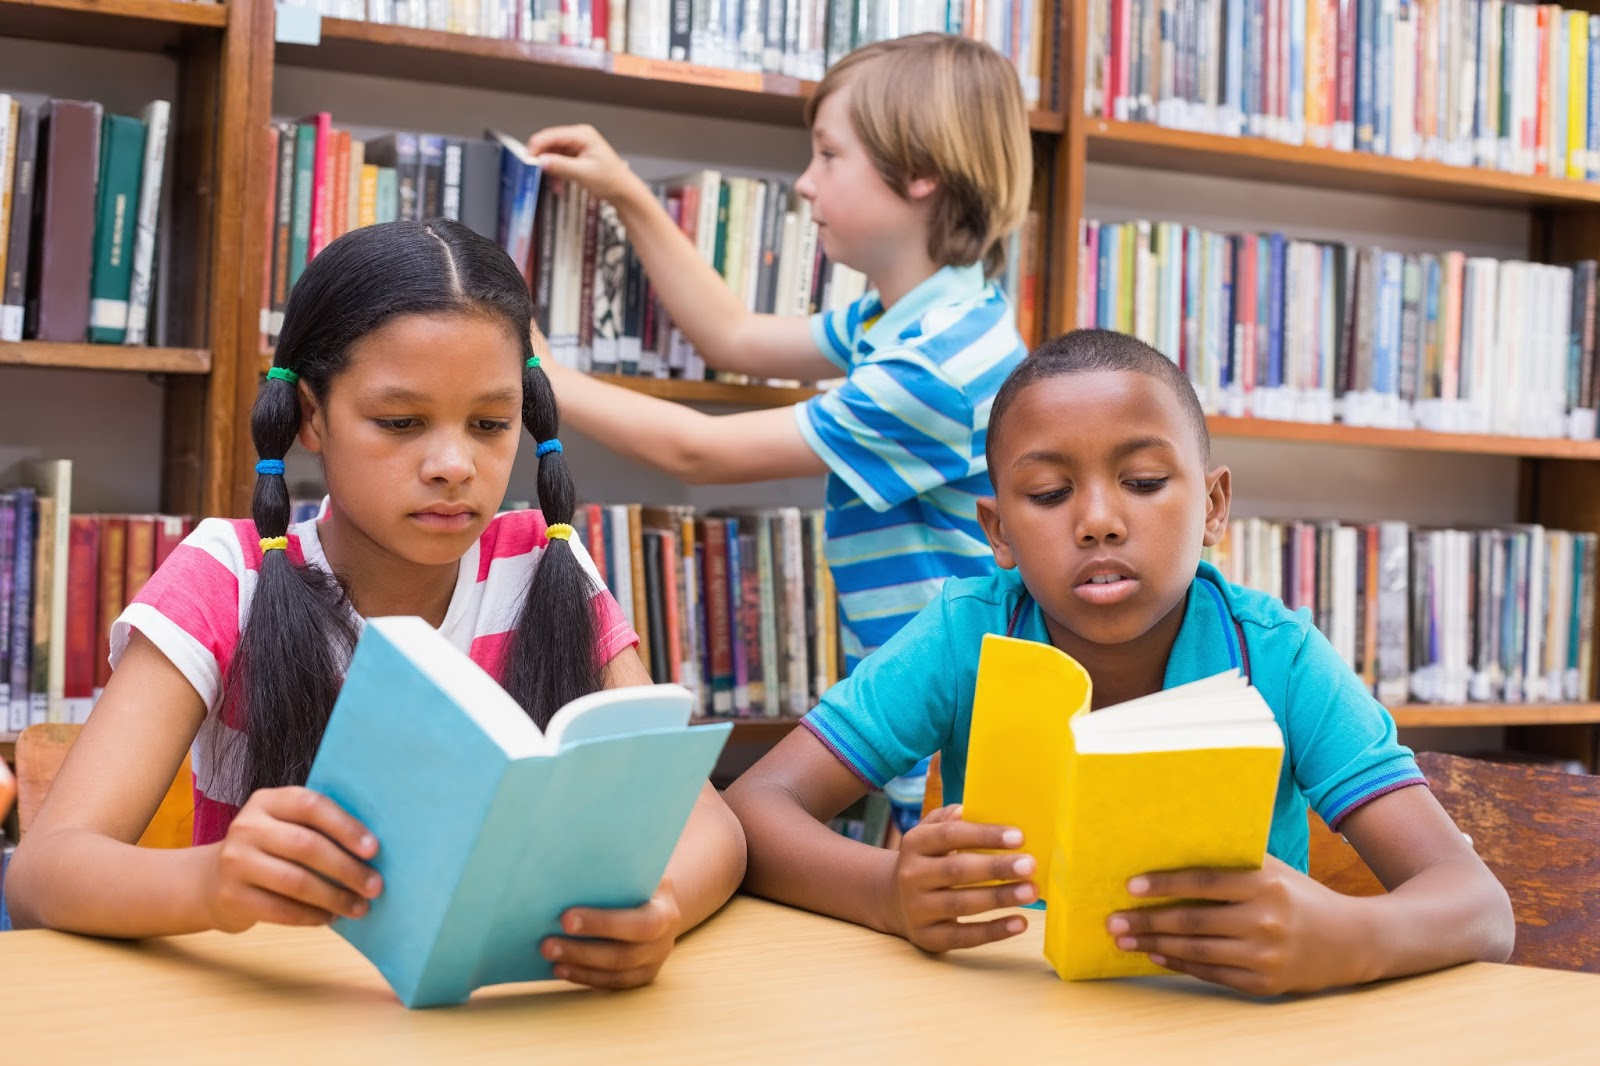 reading books over the summer When we were kids, our mom had a summer reading challenge for us each year: read 100 books they could be whatever kind of book we wanted – picture books, comic books, chapter books – you name it.